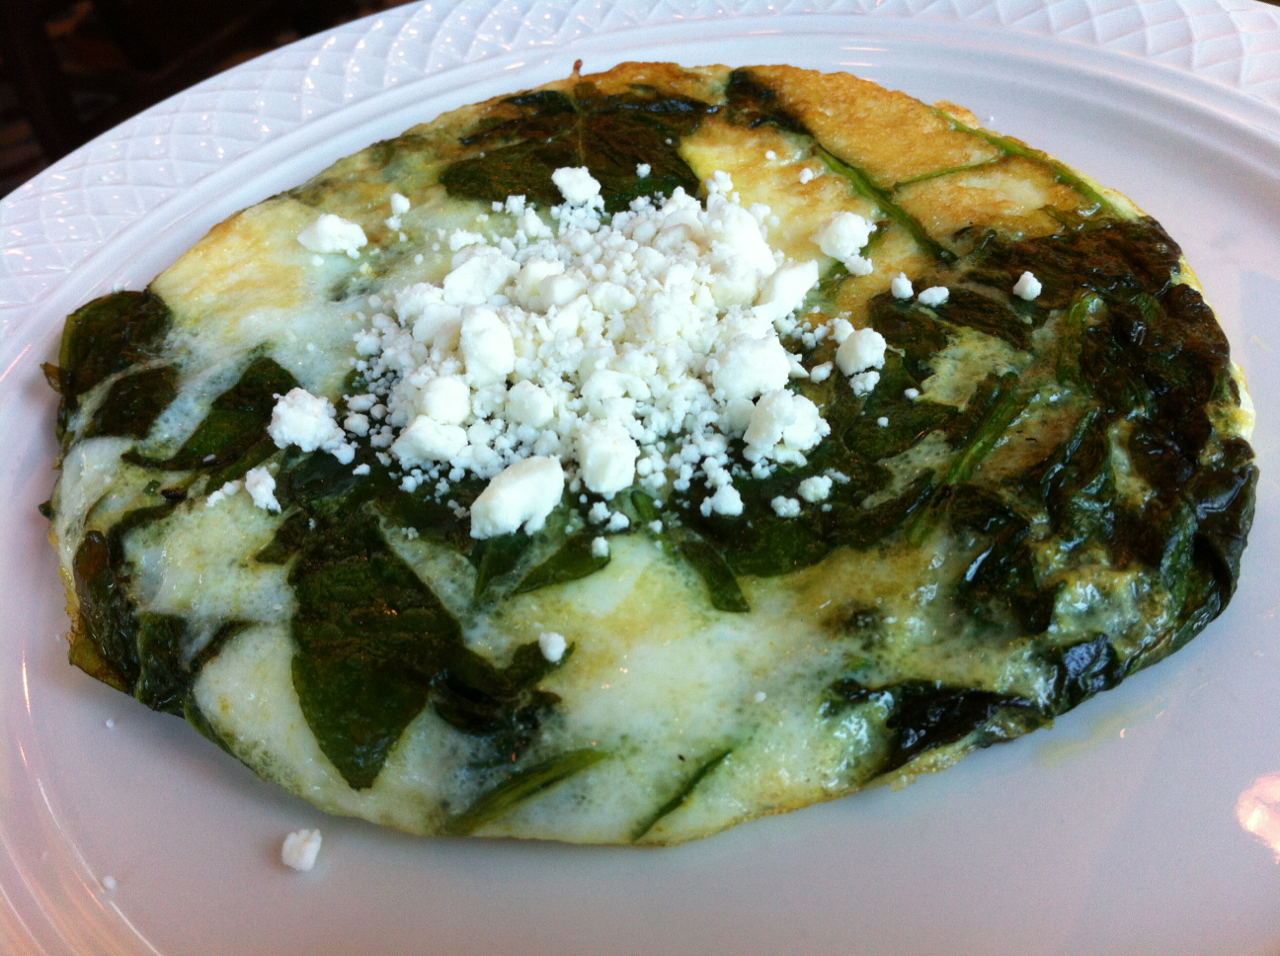 Egg White Spinach and feta frittata I had at my hotel recently. Very good.